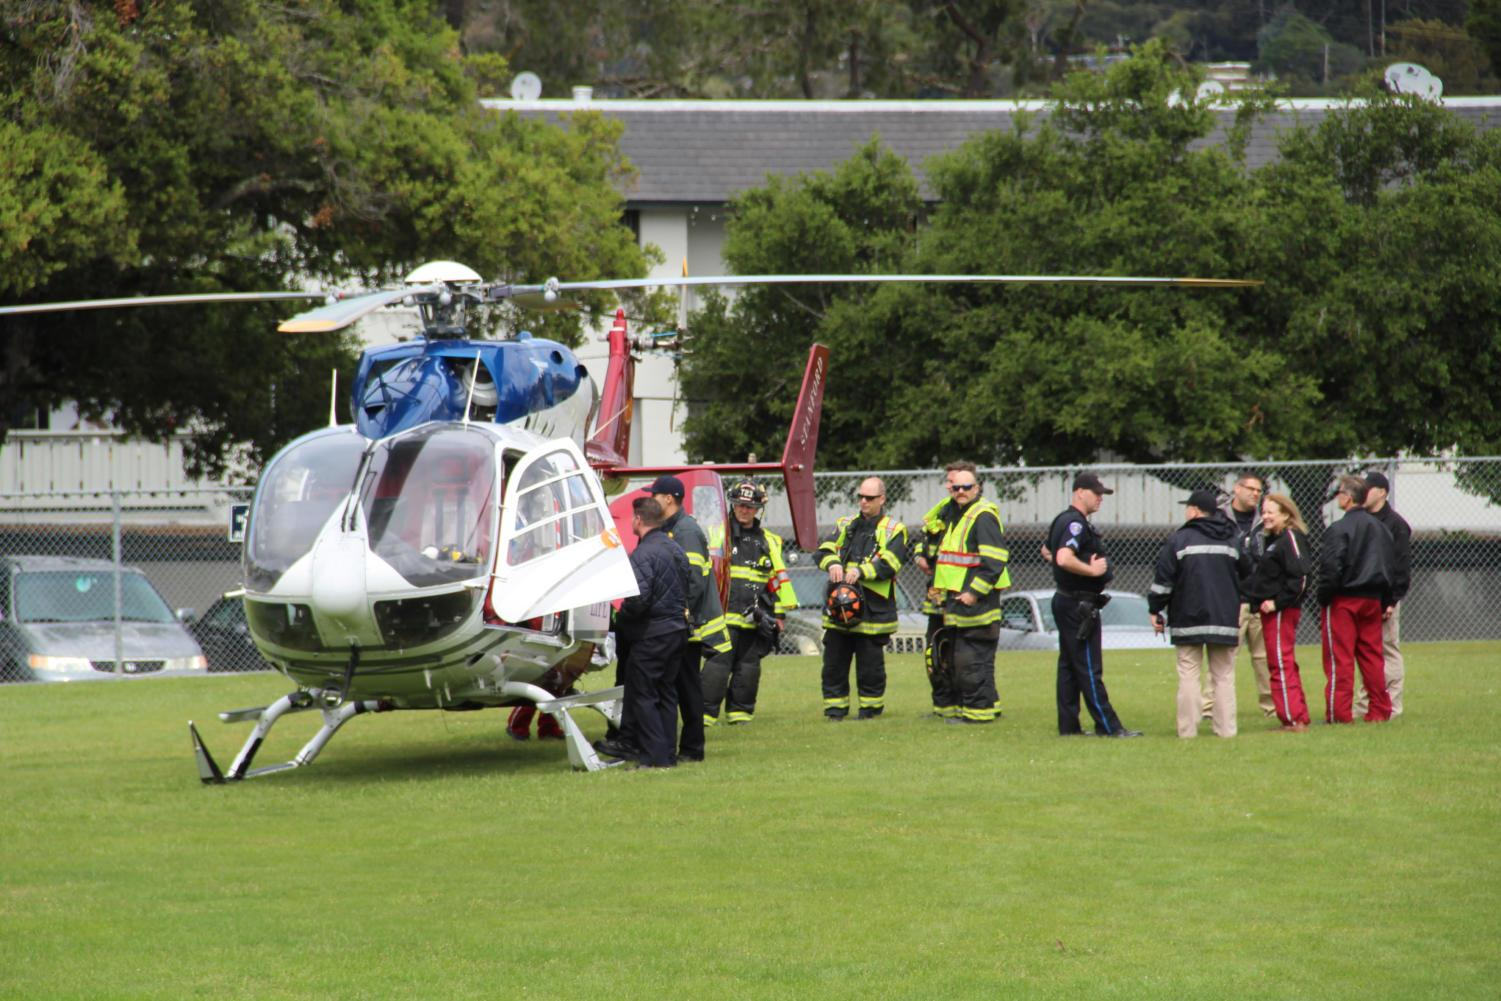 A+helicopter+is+brought+in+by+local+authorities%2C+landing+on+the+softball+field.